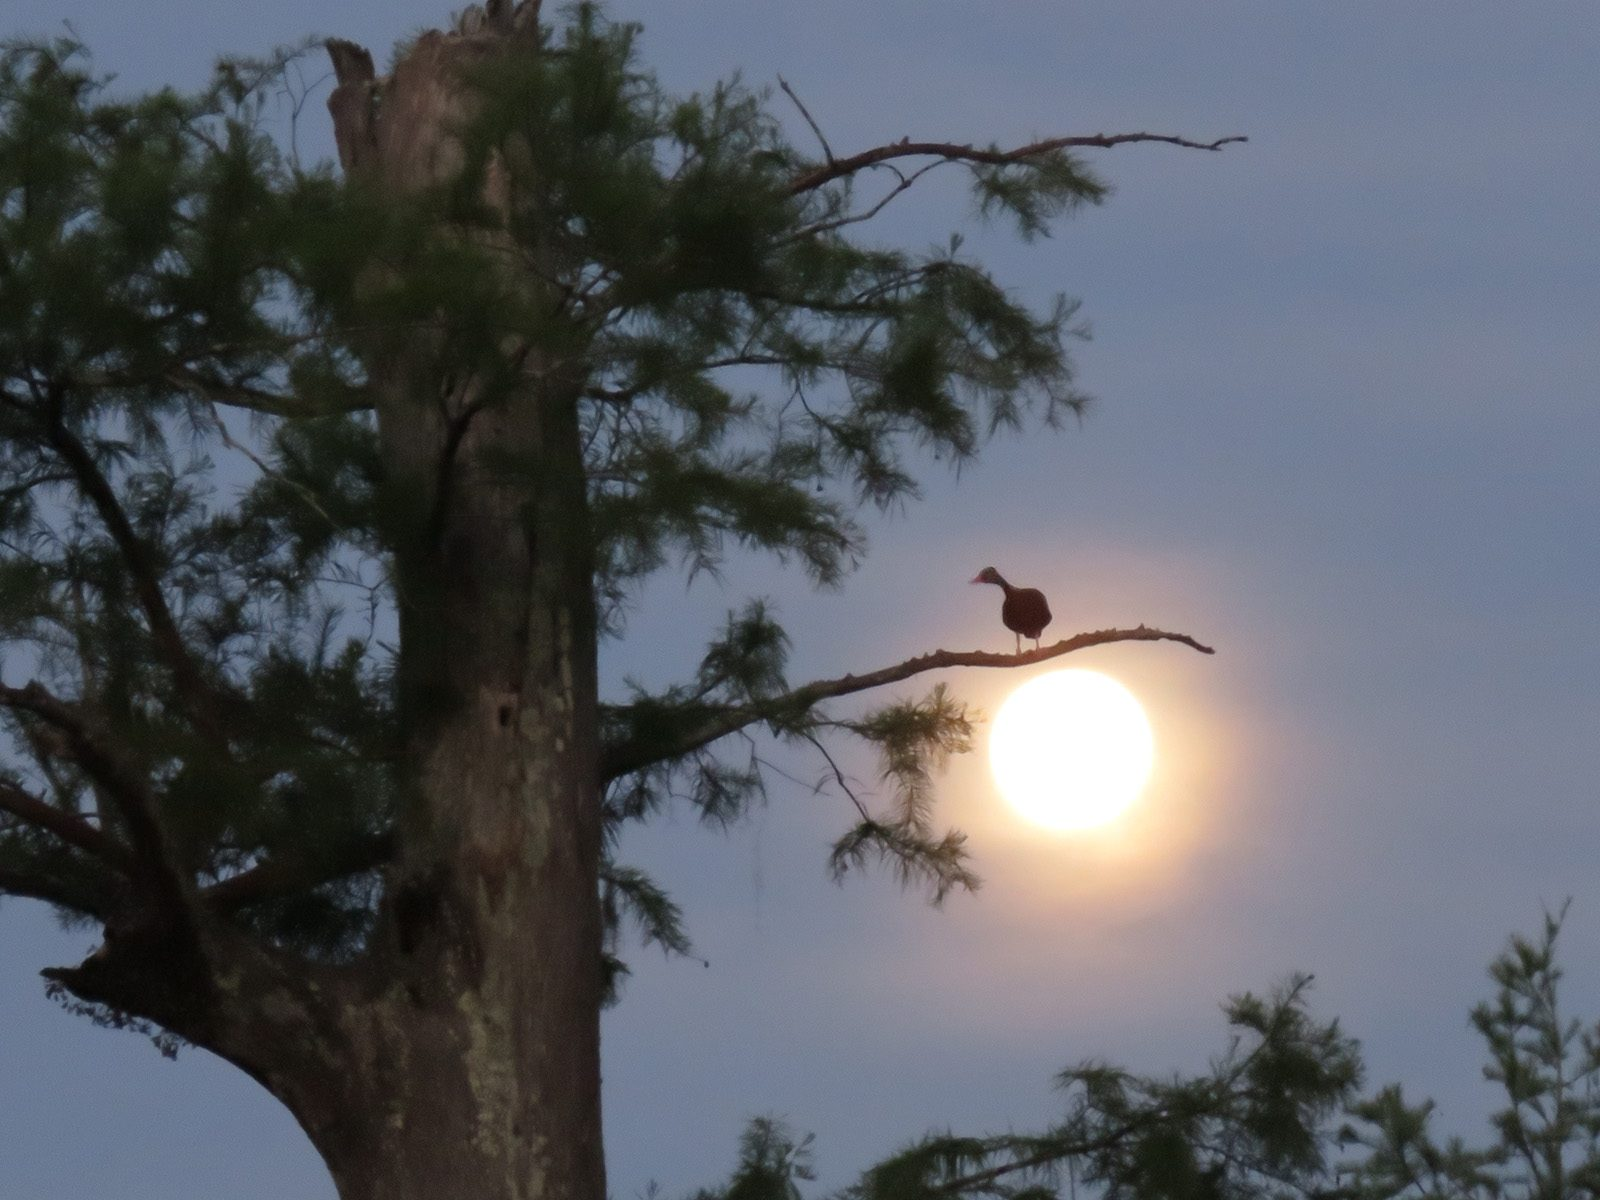 Black-Bellied Whistling Duck on the Moon